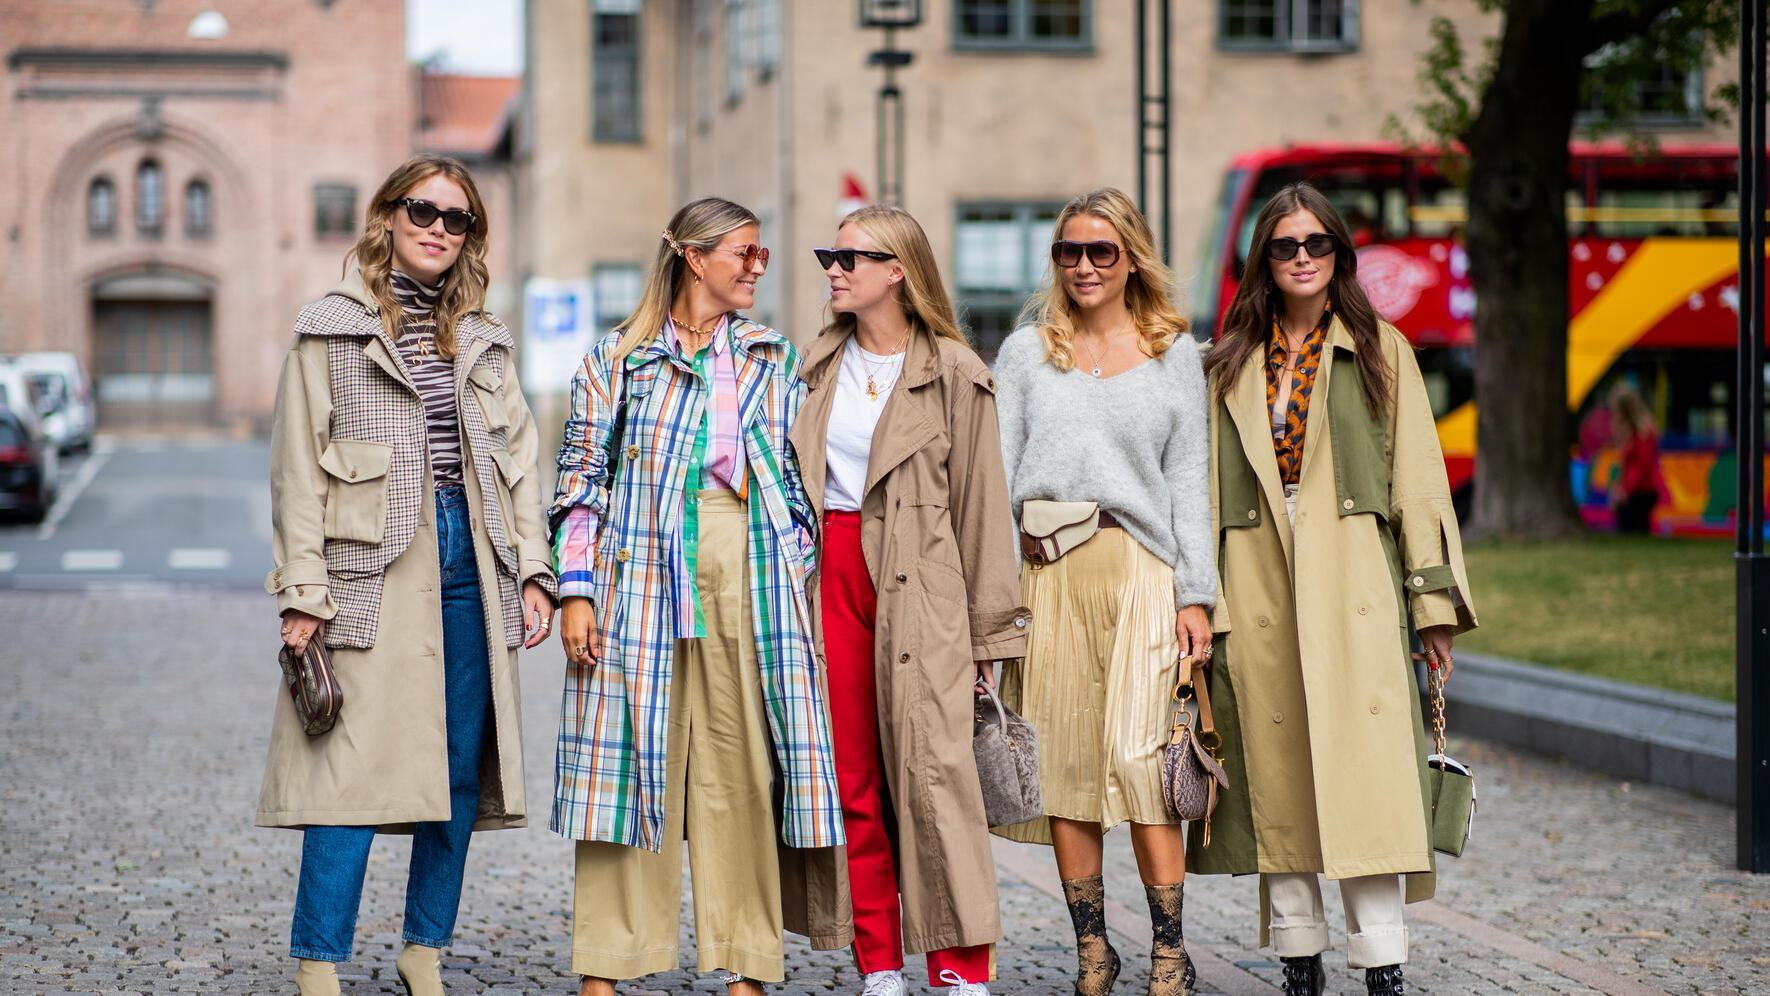 OSLO, NORWAY - AUGUST 14: Annabel Rosendahl, Janka Polliani, Tine Andrea, Line Langmo, Darja Barannik seen outside Cathrine Hammel during Oslo Runway SS19 on August 14, 2018 in Oslo, Norway. (Photo by Christian Vierig/Getty Images)